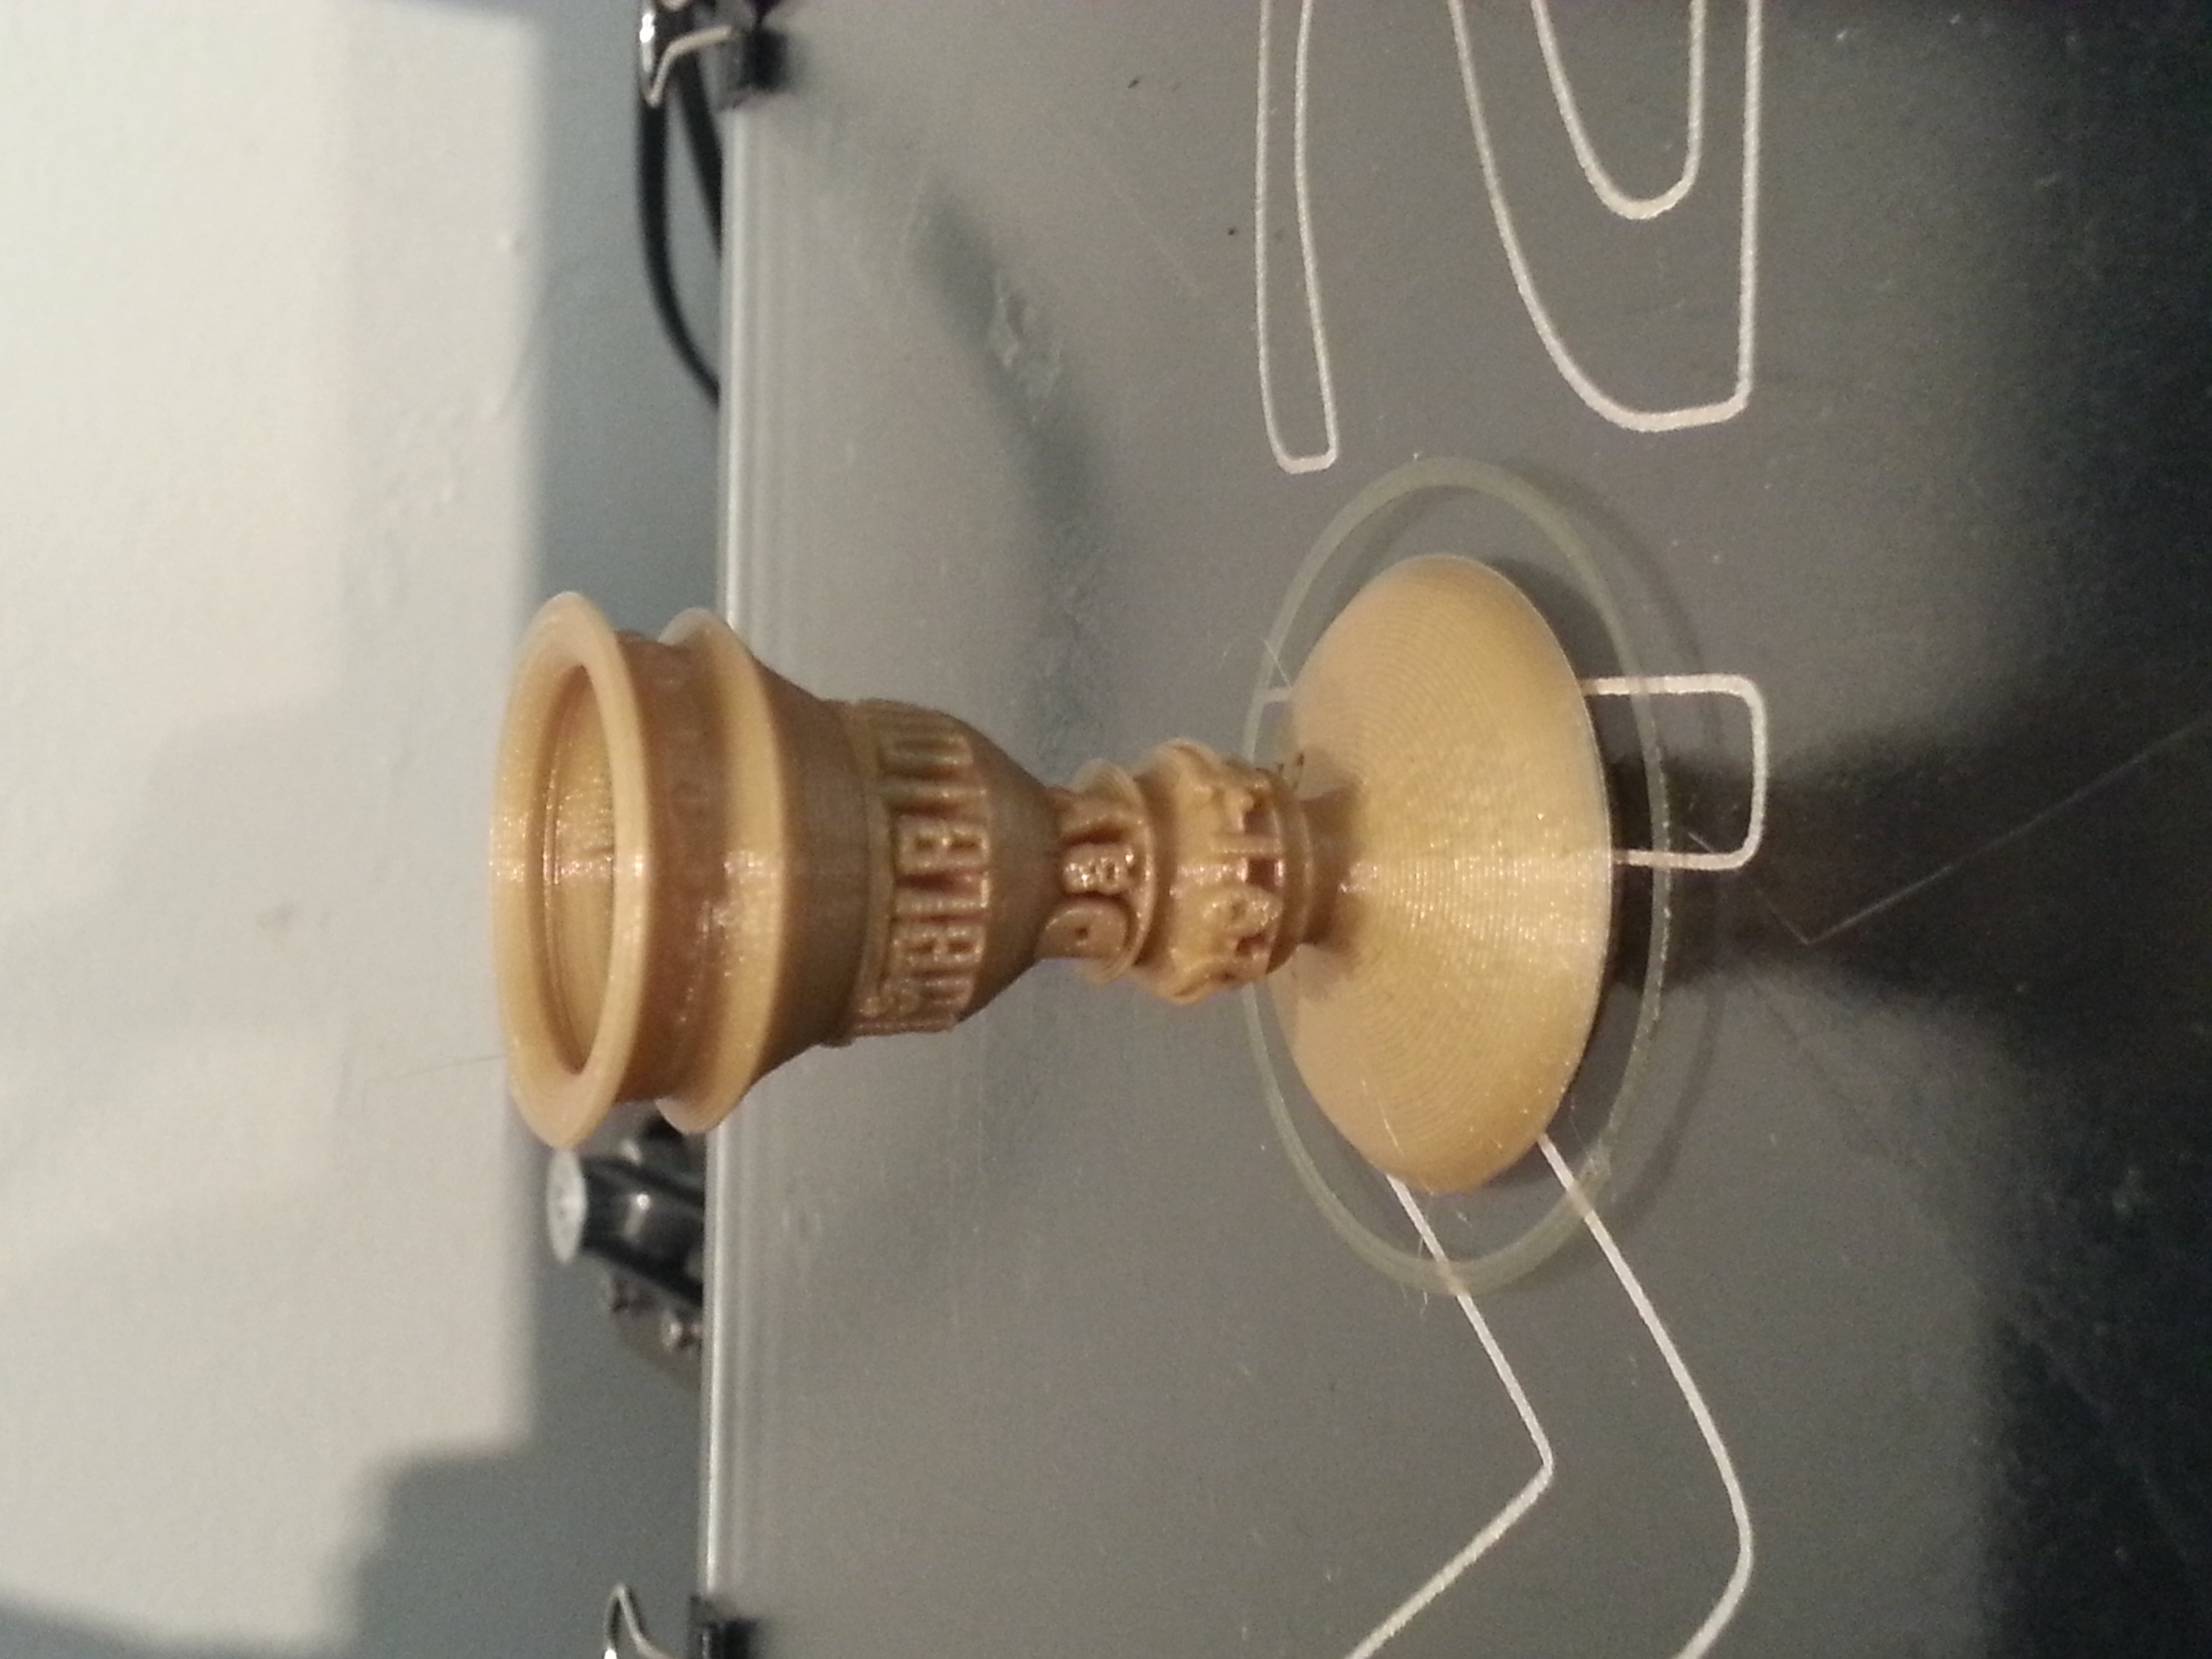 TableTop Day 2014 Trophy   MakerGear M2 - 0.15mm layers - Gold PLA